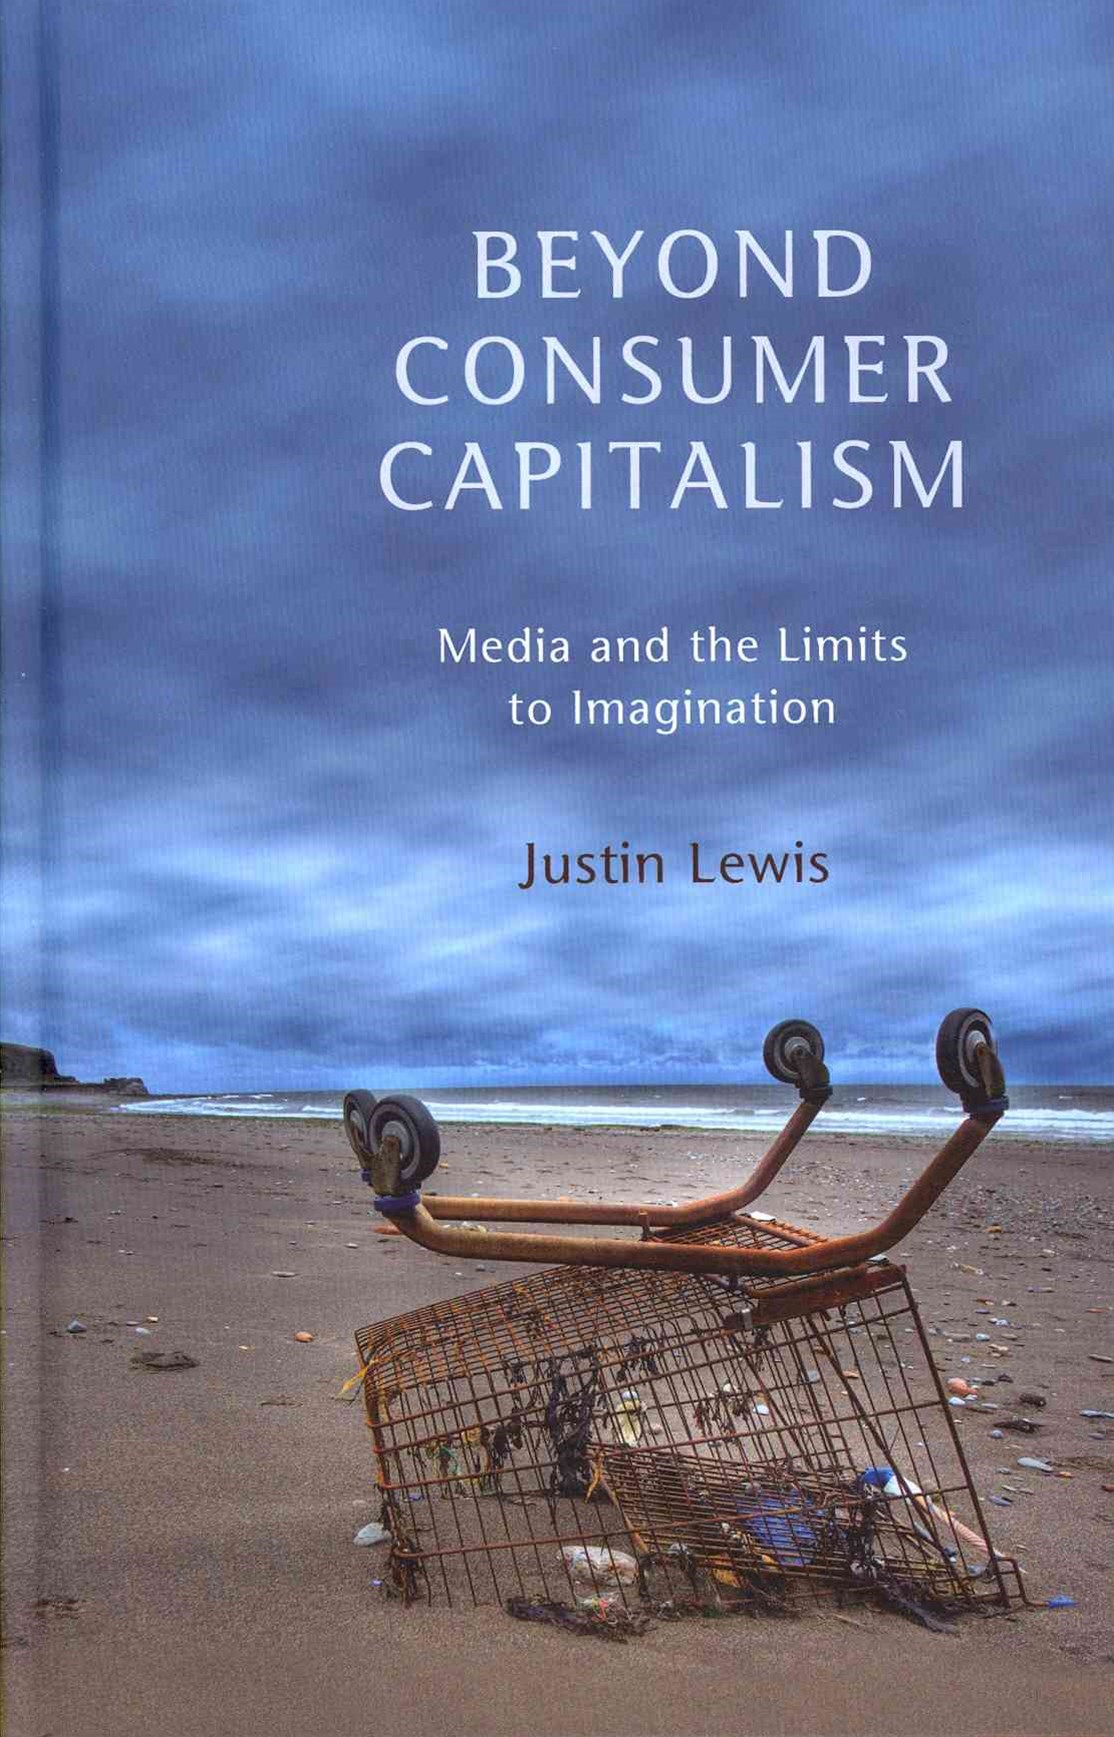 Beyond Consumer Capitalism - Media and the Limits to Imagination